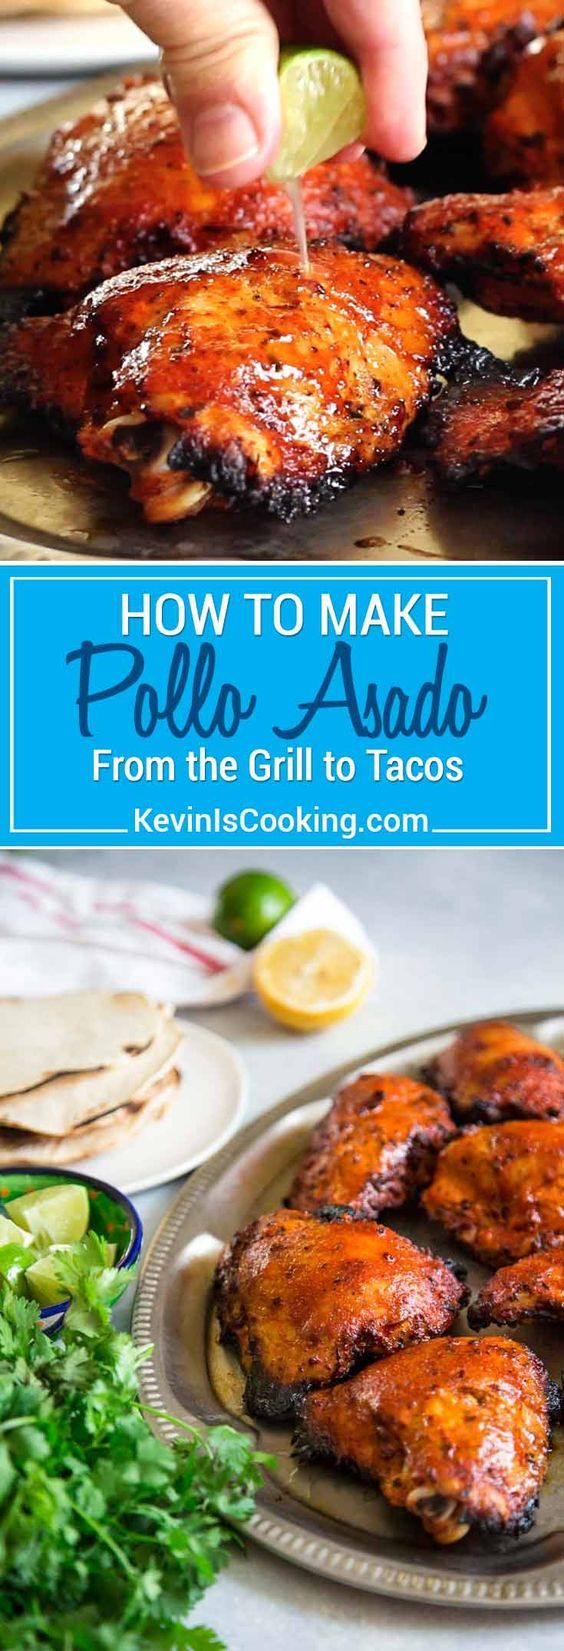 My take on How To Make Pollo Asado starts with marinating chicken in orange and lime juice, oregano, cumin, garlic and achiote paste overnight. Grill & eat! keviniscooking.com via @keviniscooking